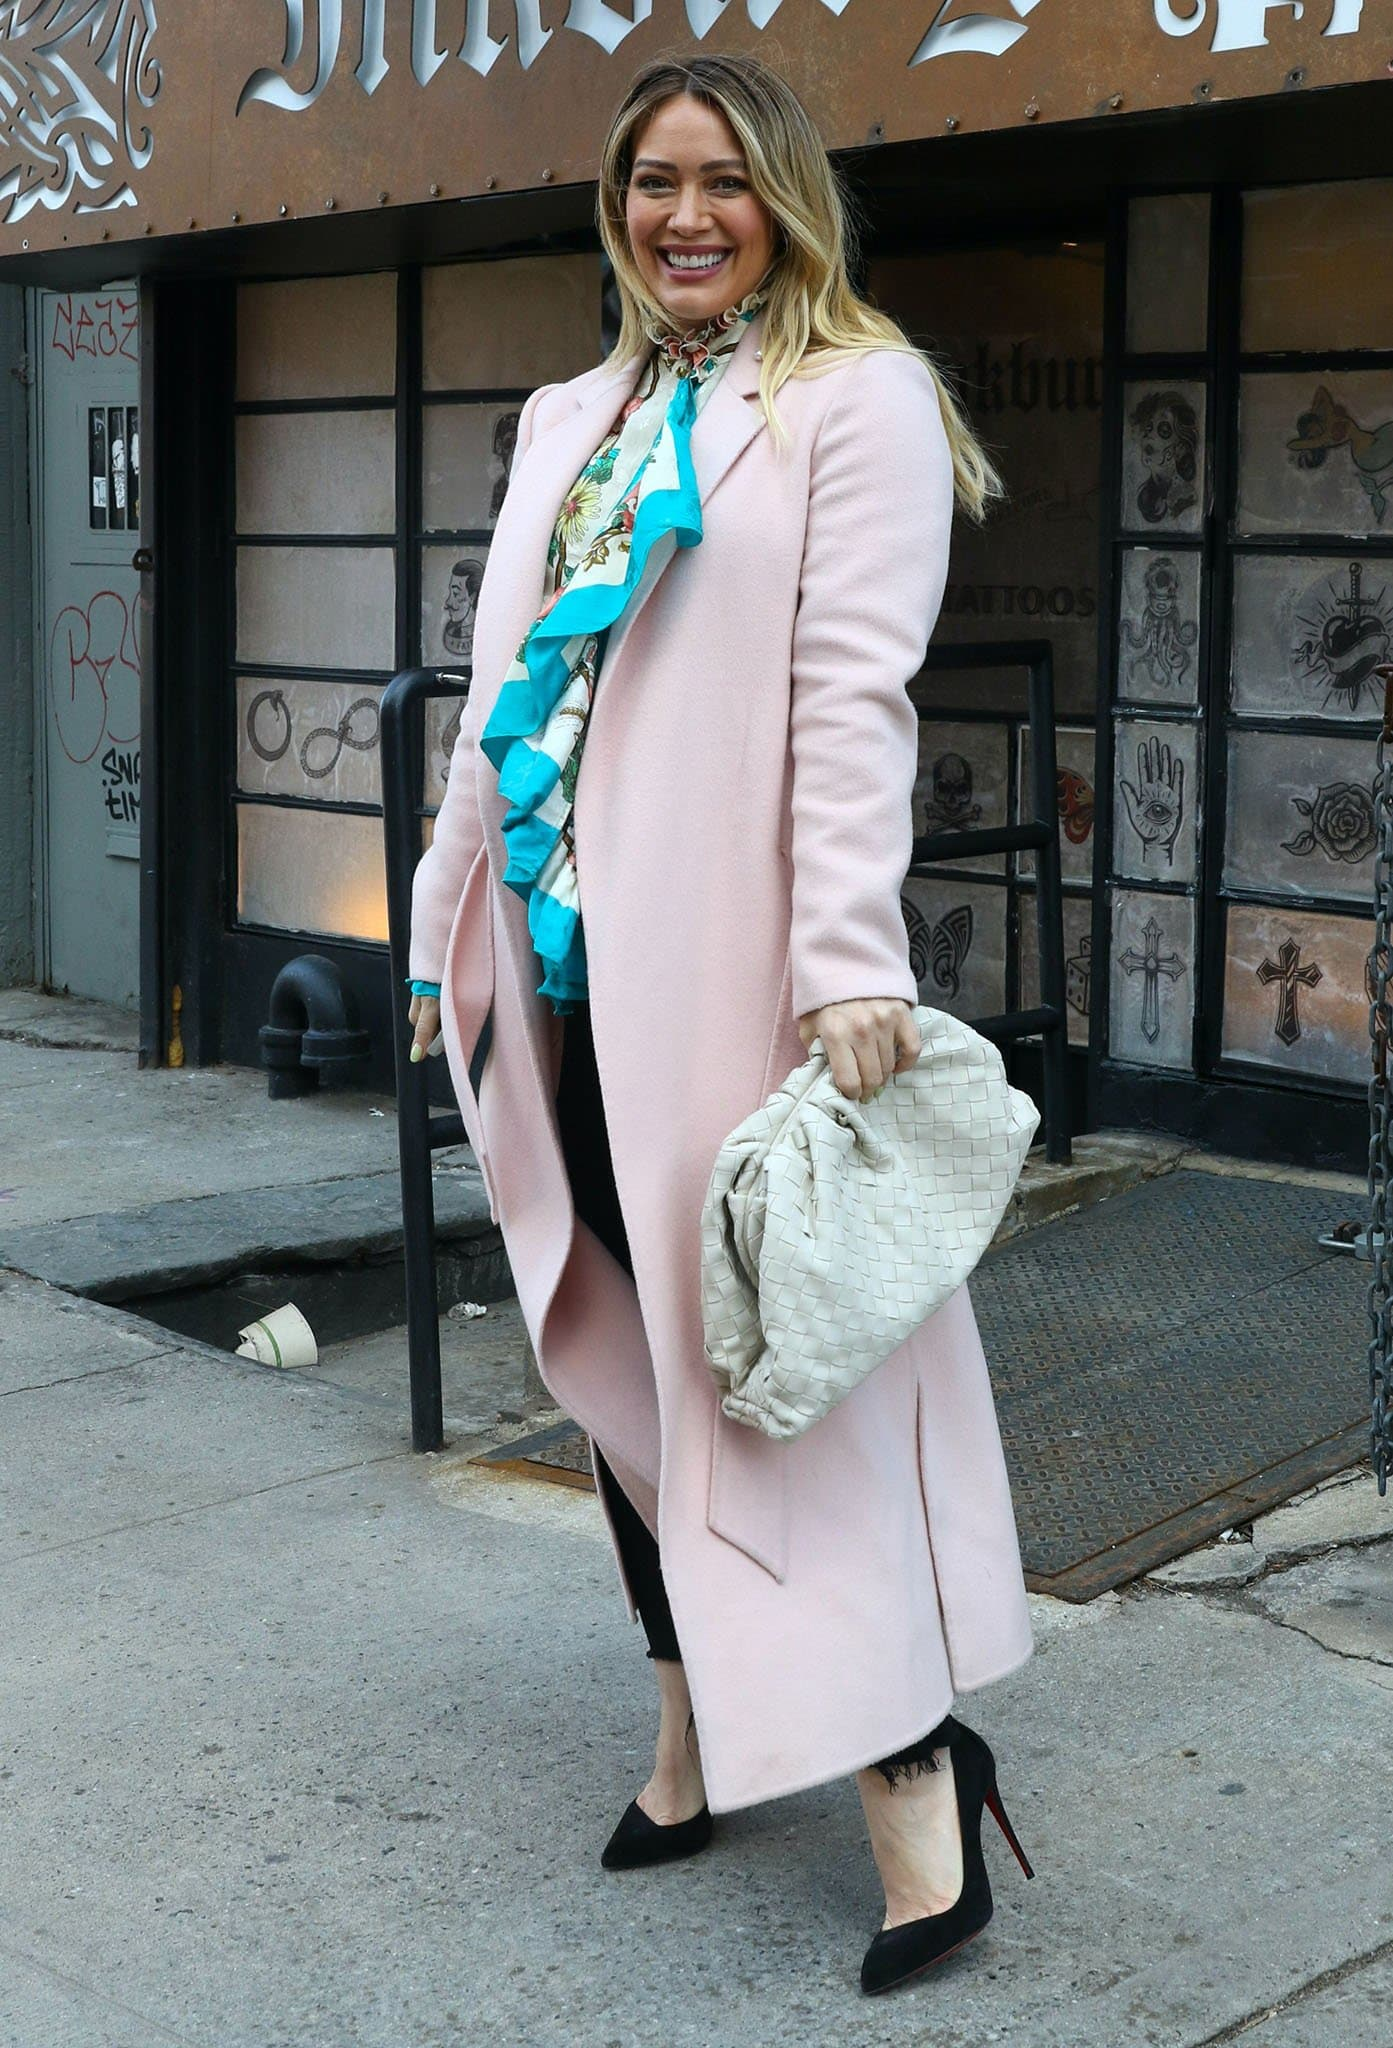 Hilary Duff in a feminine Gucci floral blouse and pink coat on the set of Younger season finale